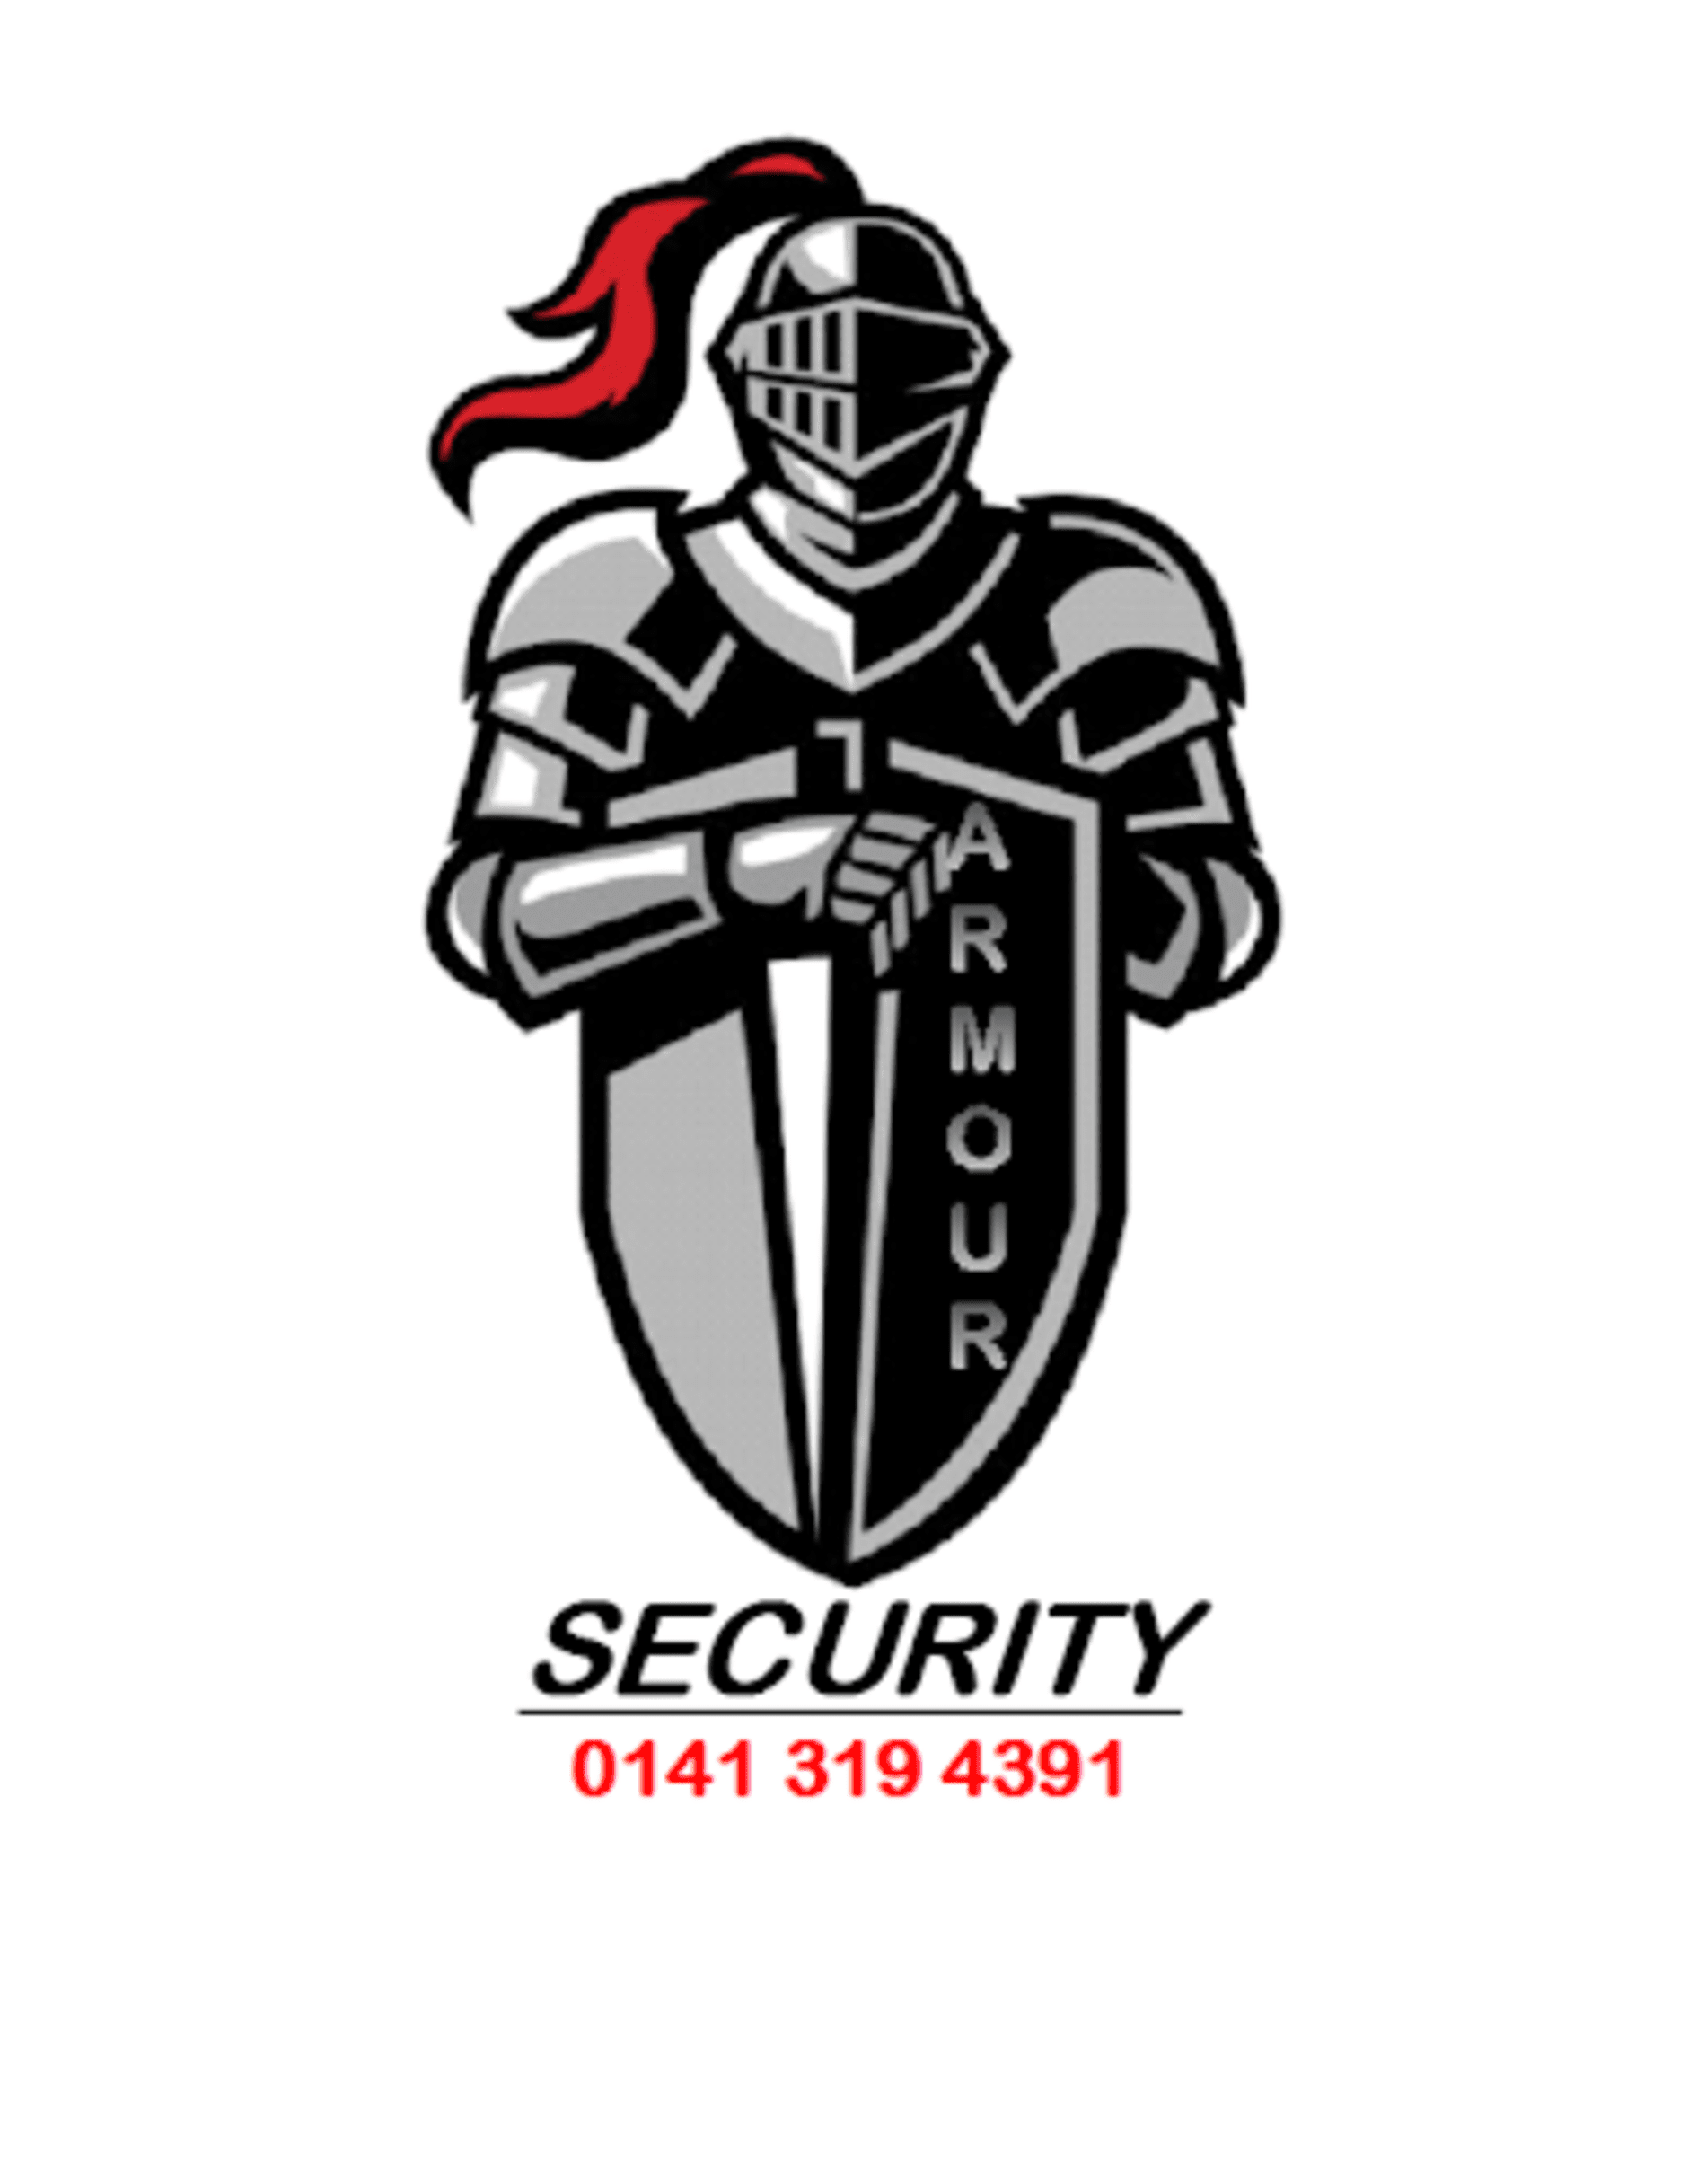 Armour Security